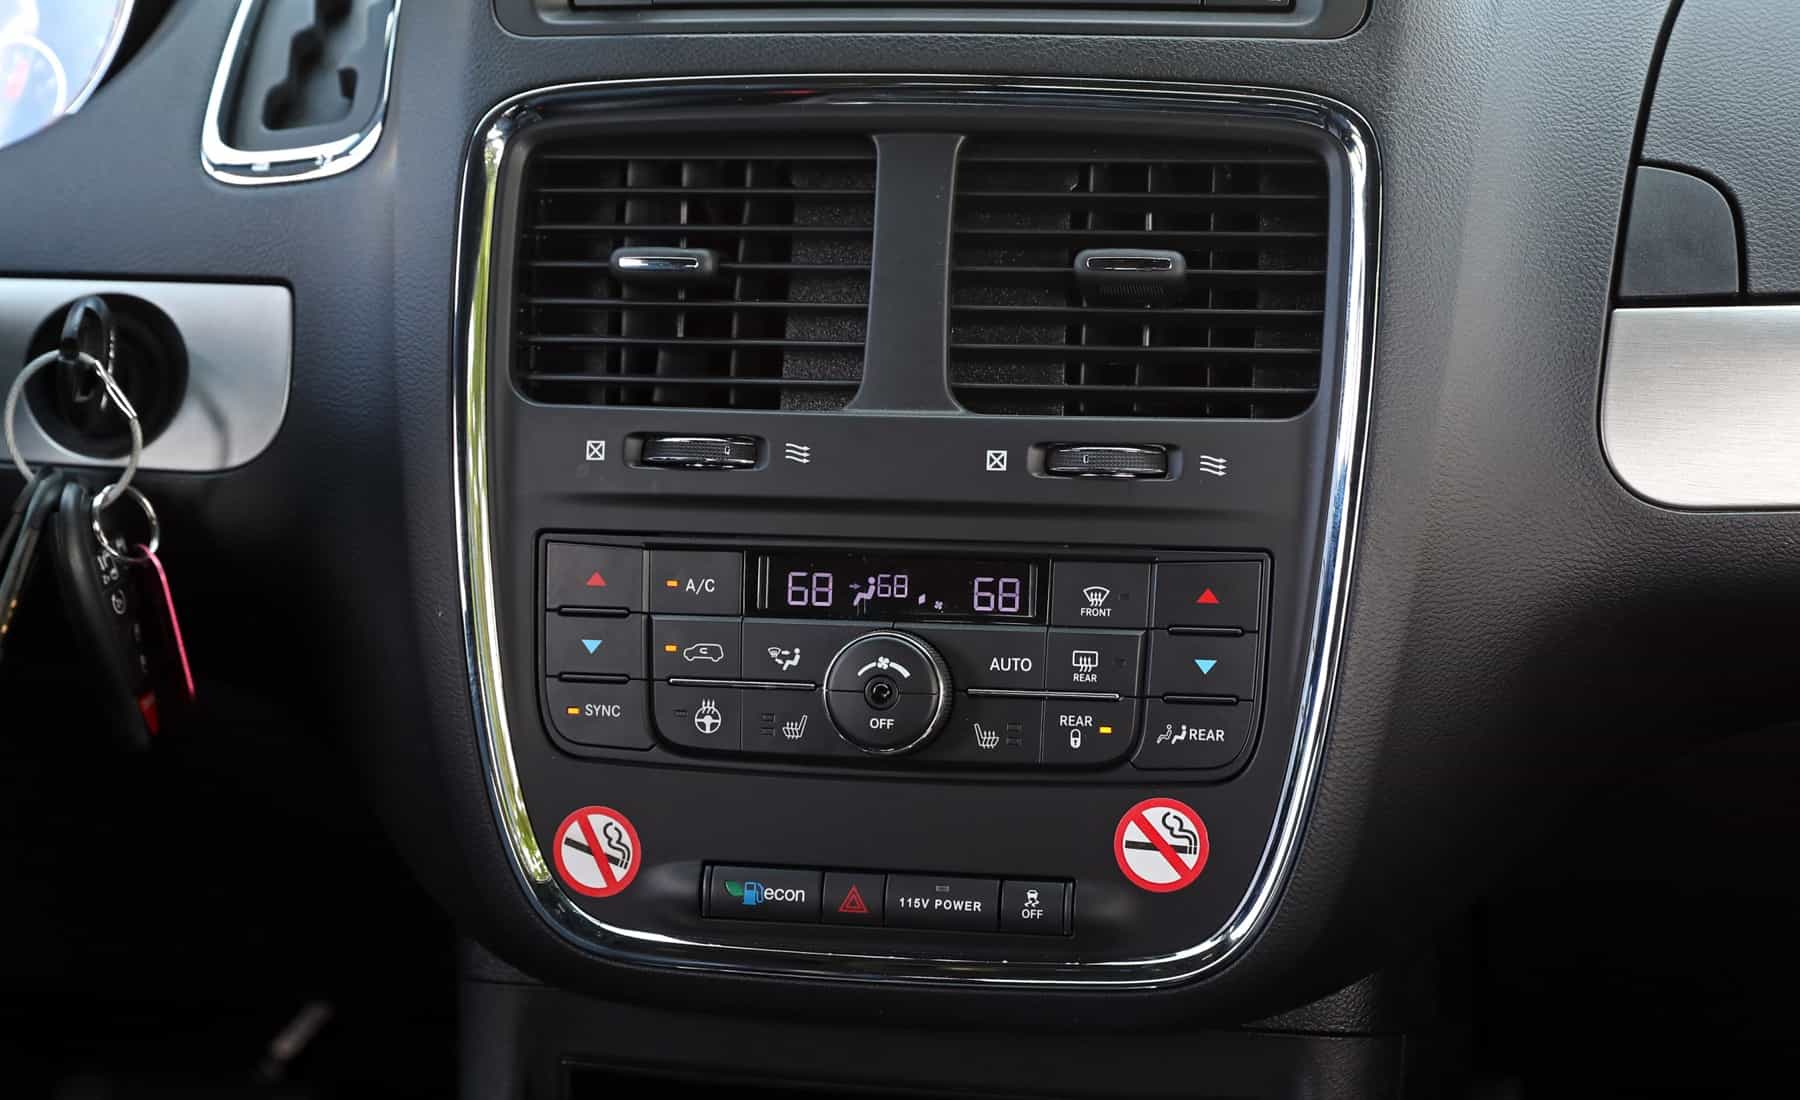 2017 Dodge Grand Caravan Interior View Climate Control (Photo 30 of 47)